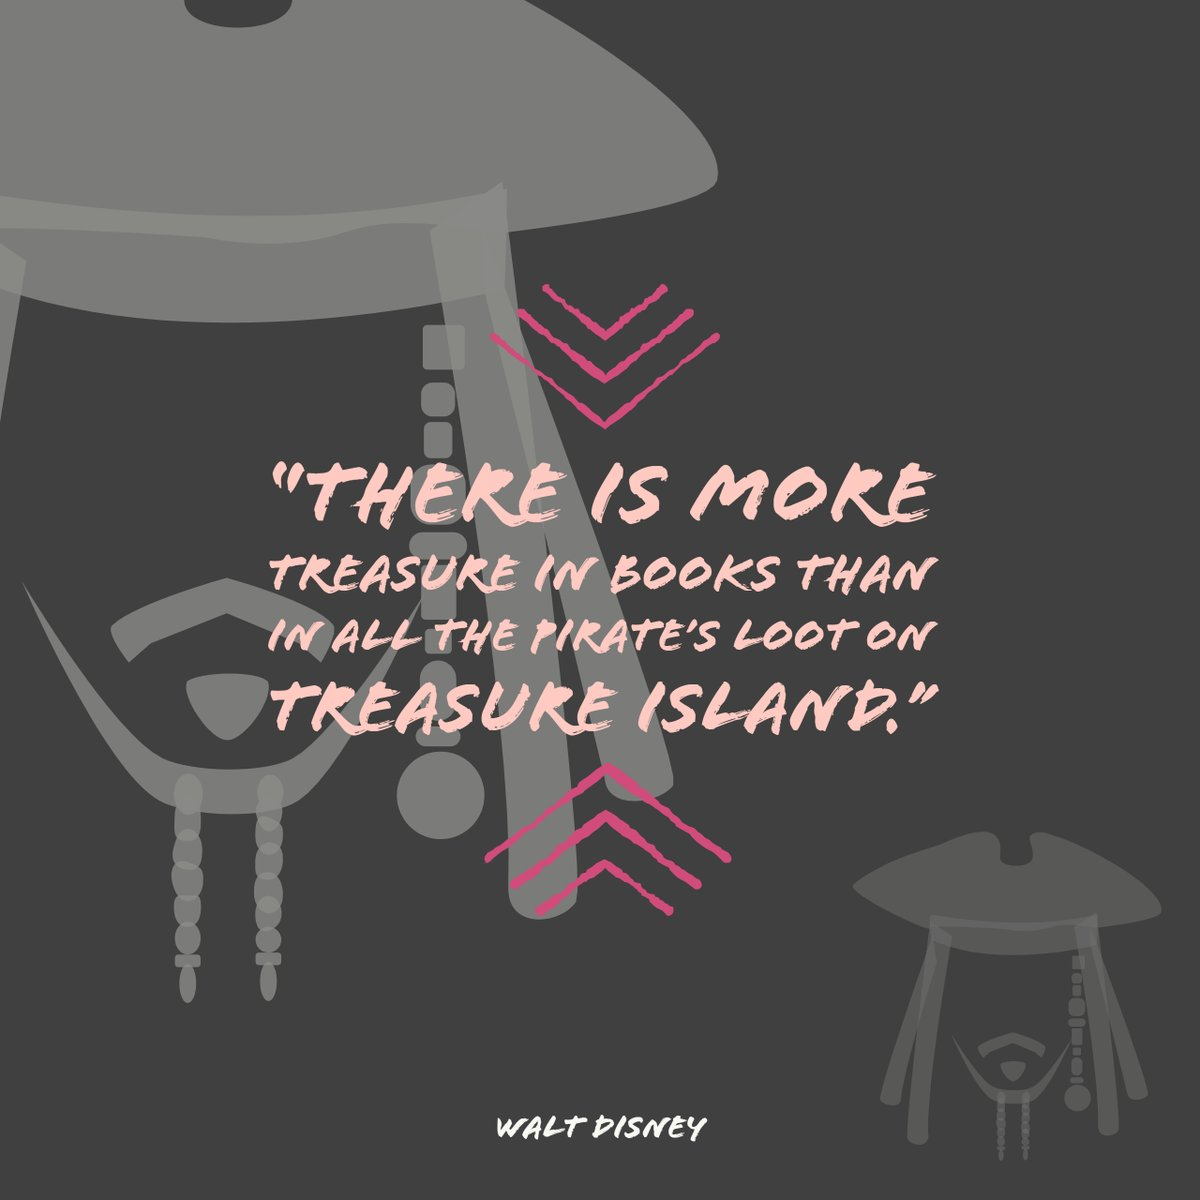 There is more treasure in books than in all the pirates's loot on treasure island. - Walt Disney